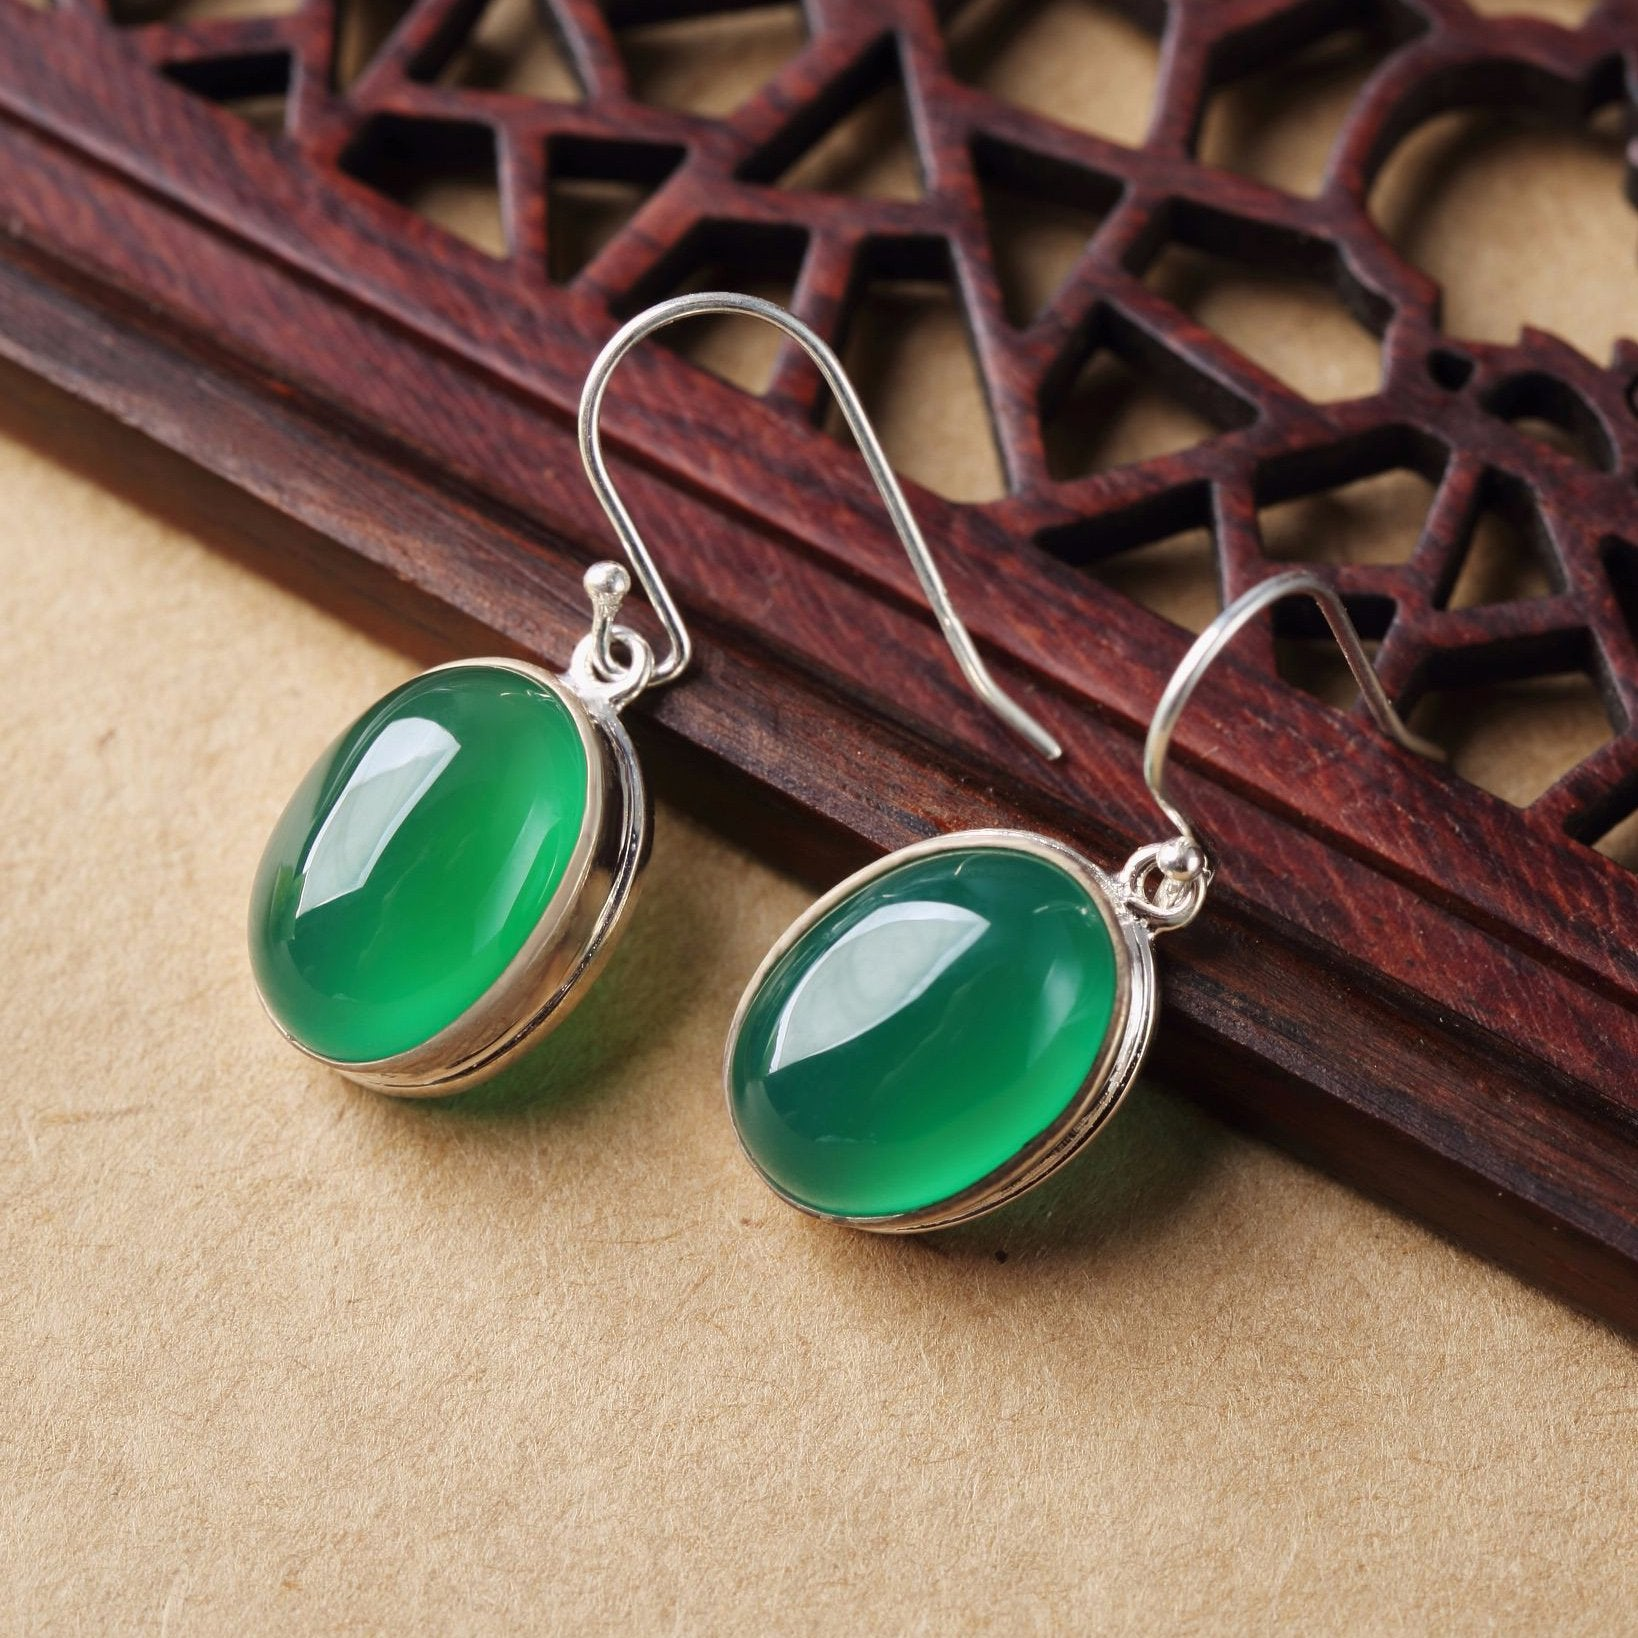 Handmade Green Jade Drop Earrings